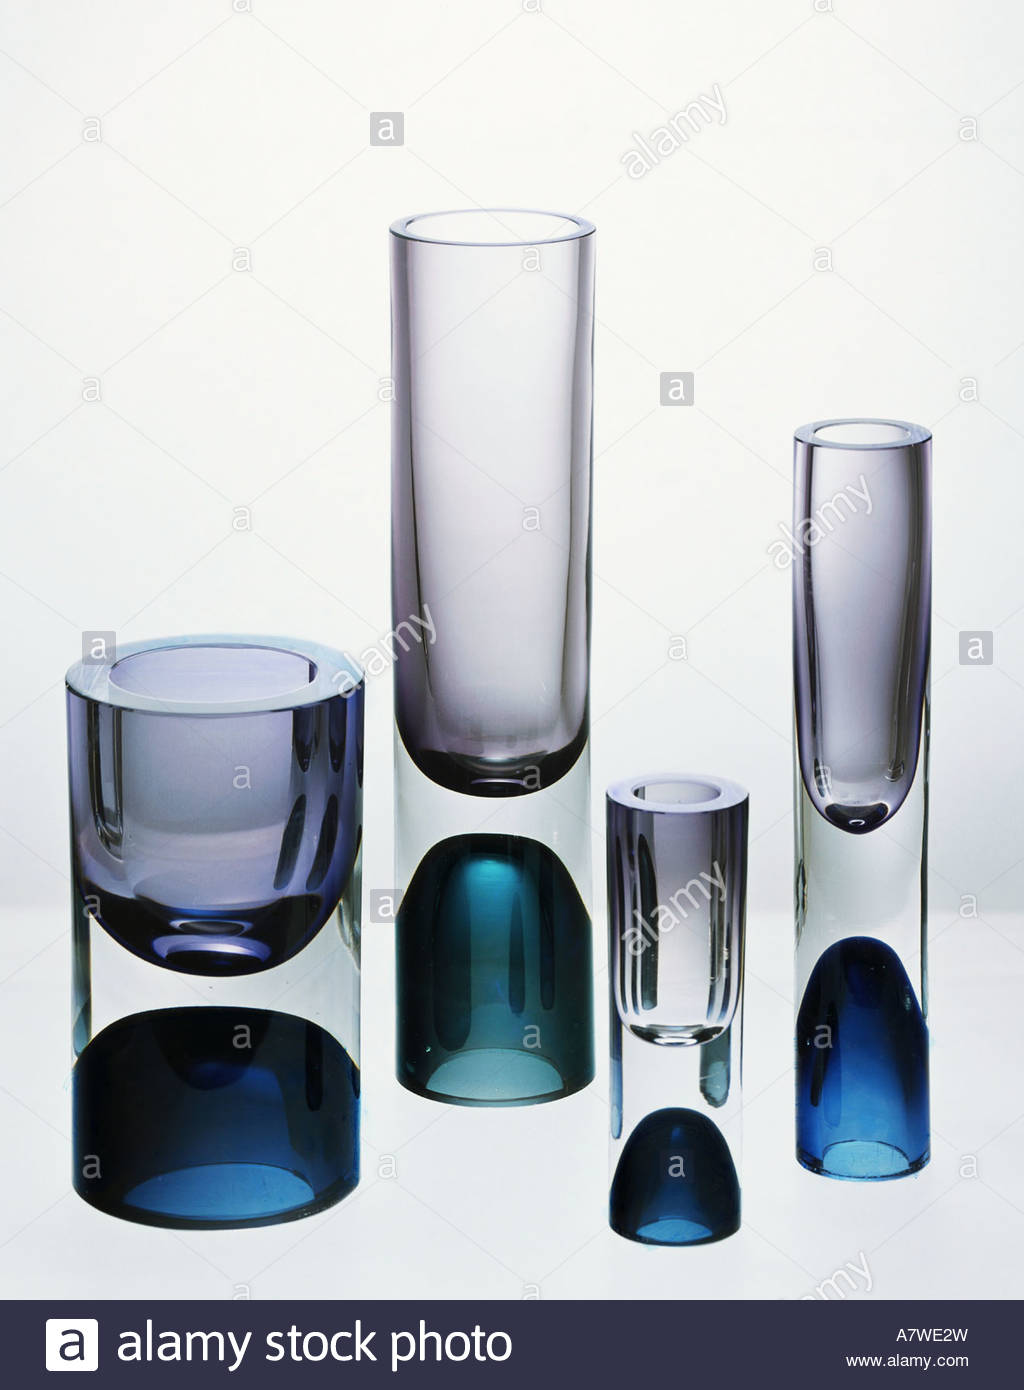 Cylindrical vase stock photos cylindrical vase stock images alamy fine arts glass vases design by tapio wirkola finland 1957 reviewsmspy